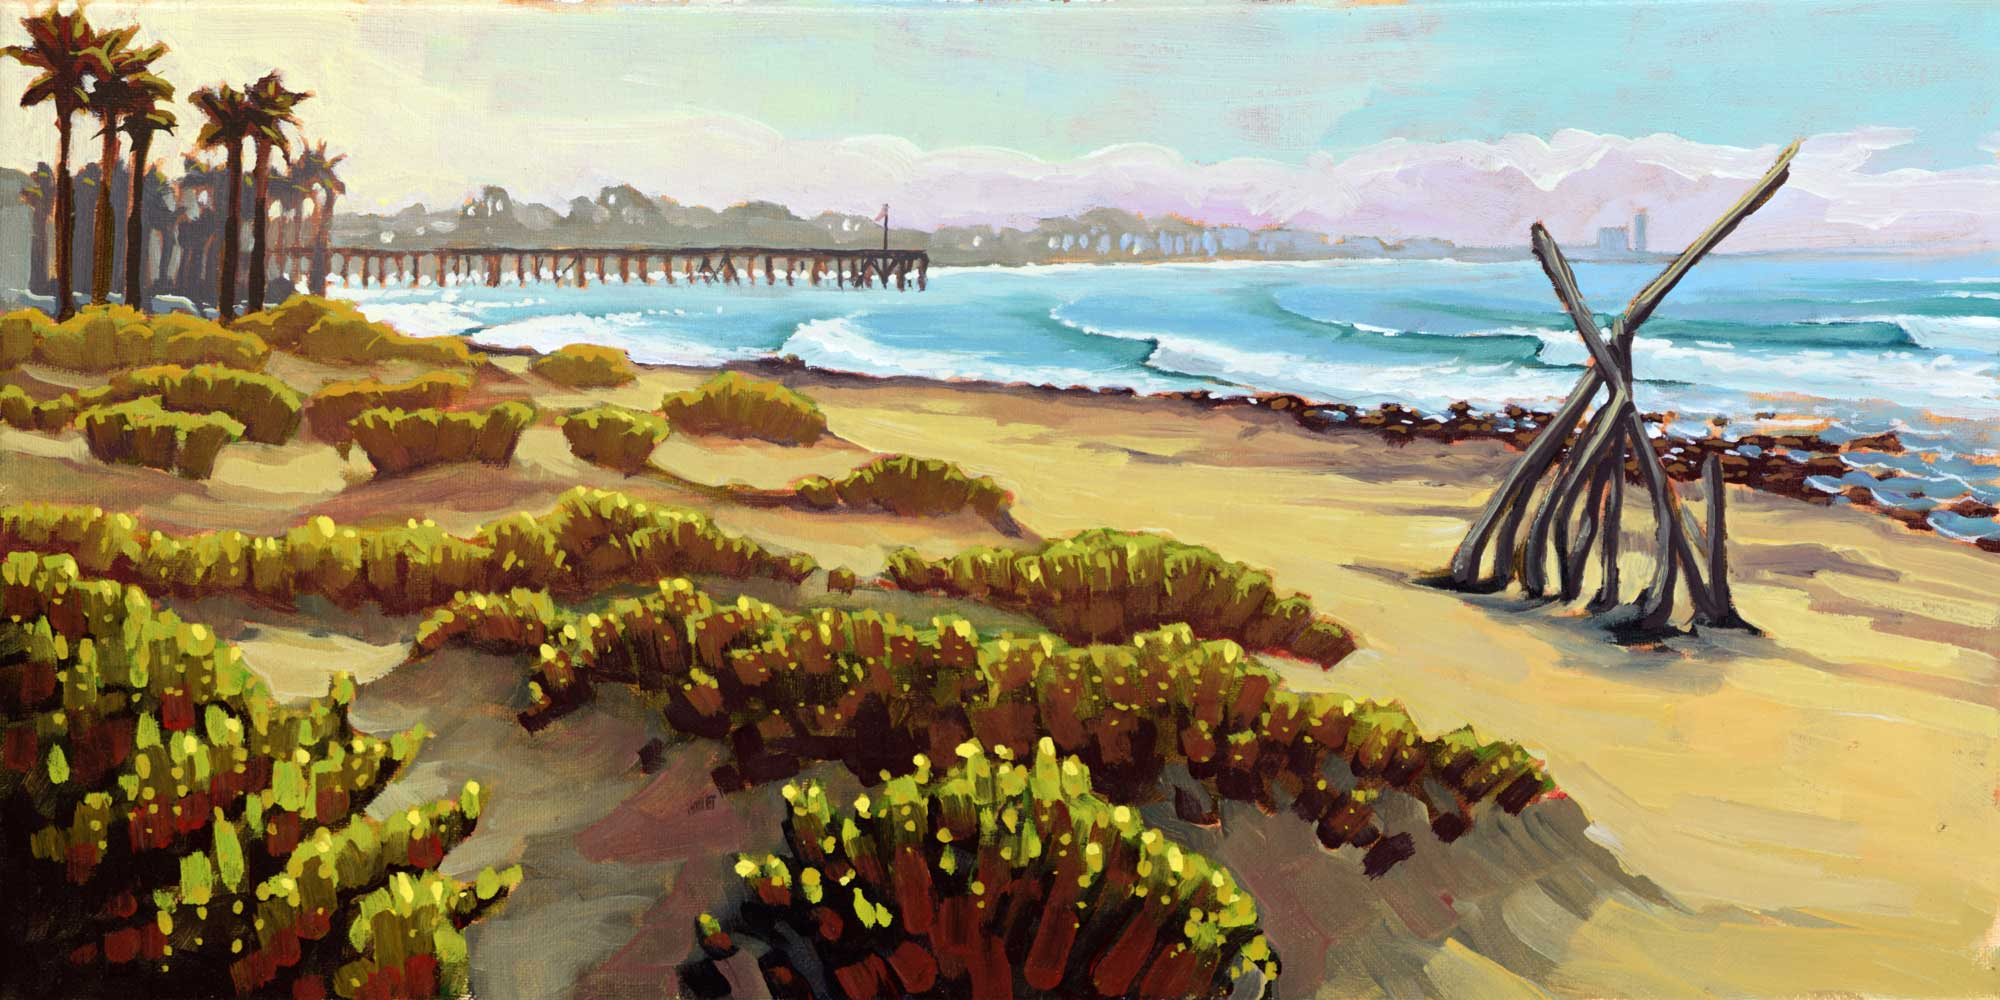 Plein air artwork of Surfer's Point at the County Fairgrounds on the Ventura coast of southern California